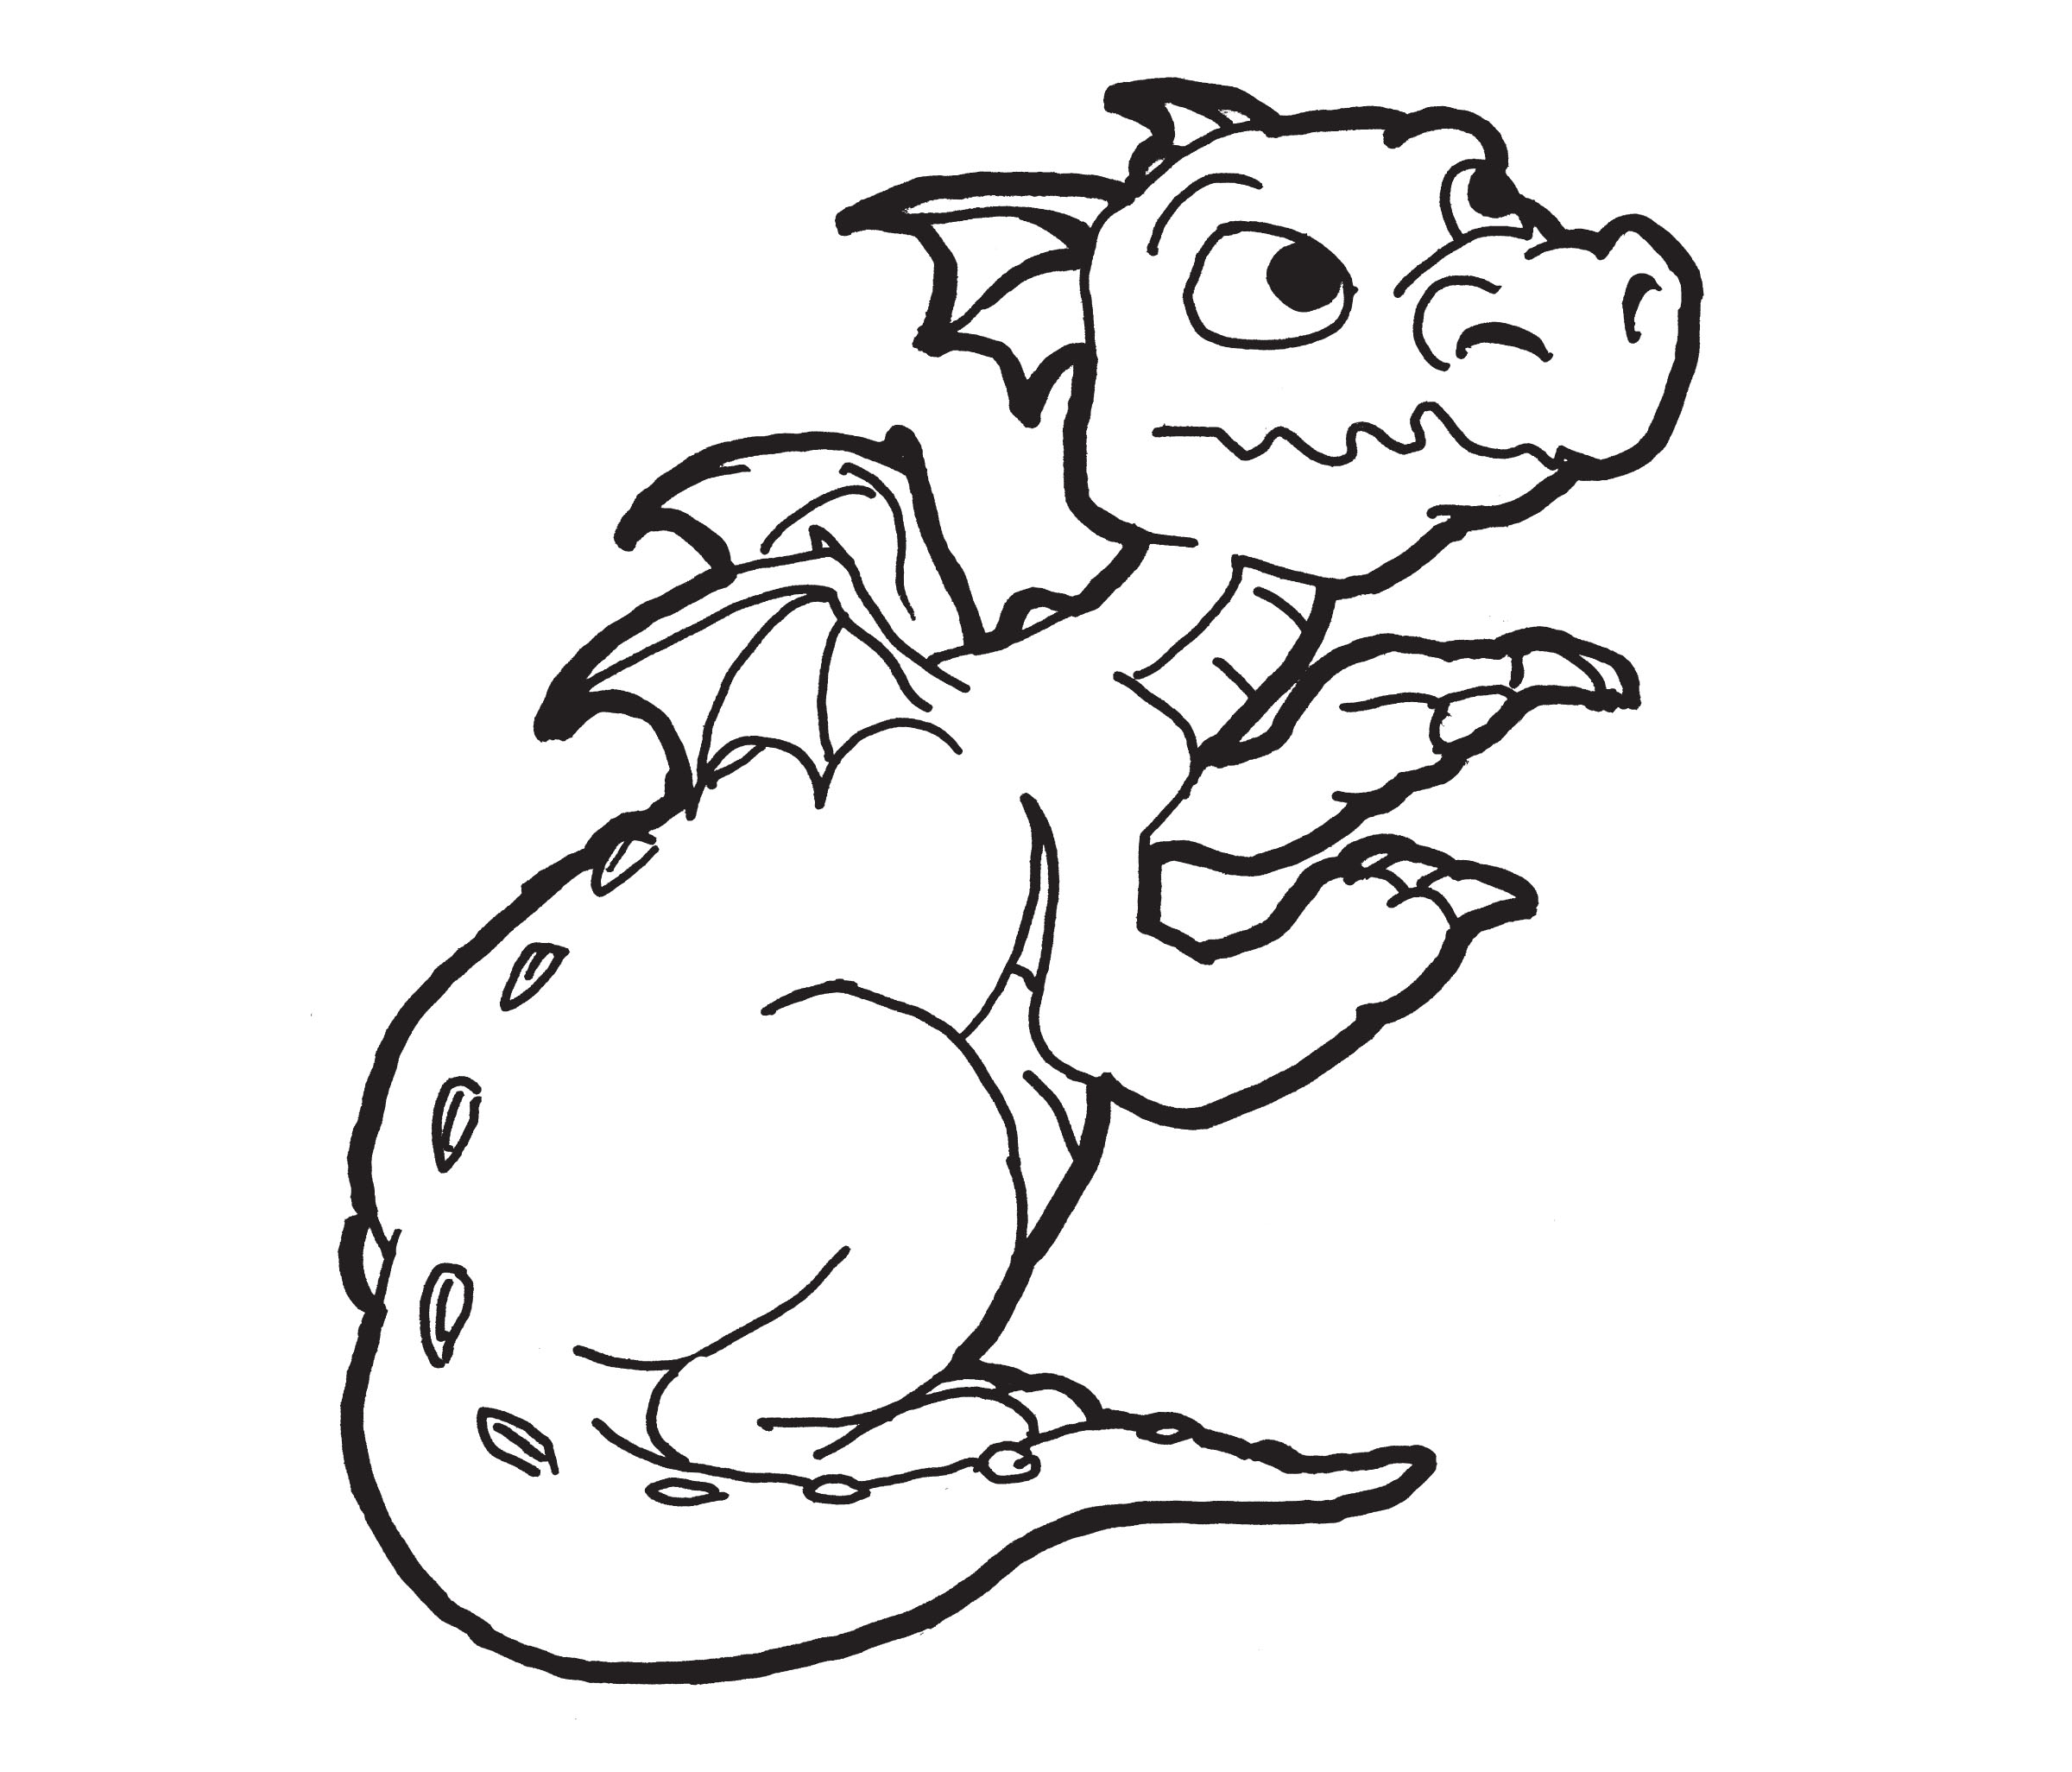 Printable coloring pages of dragons - Dragons Coloring Pages